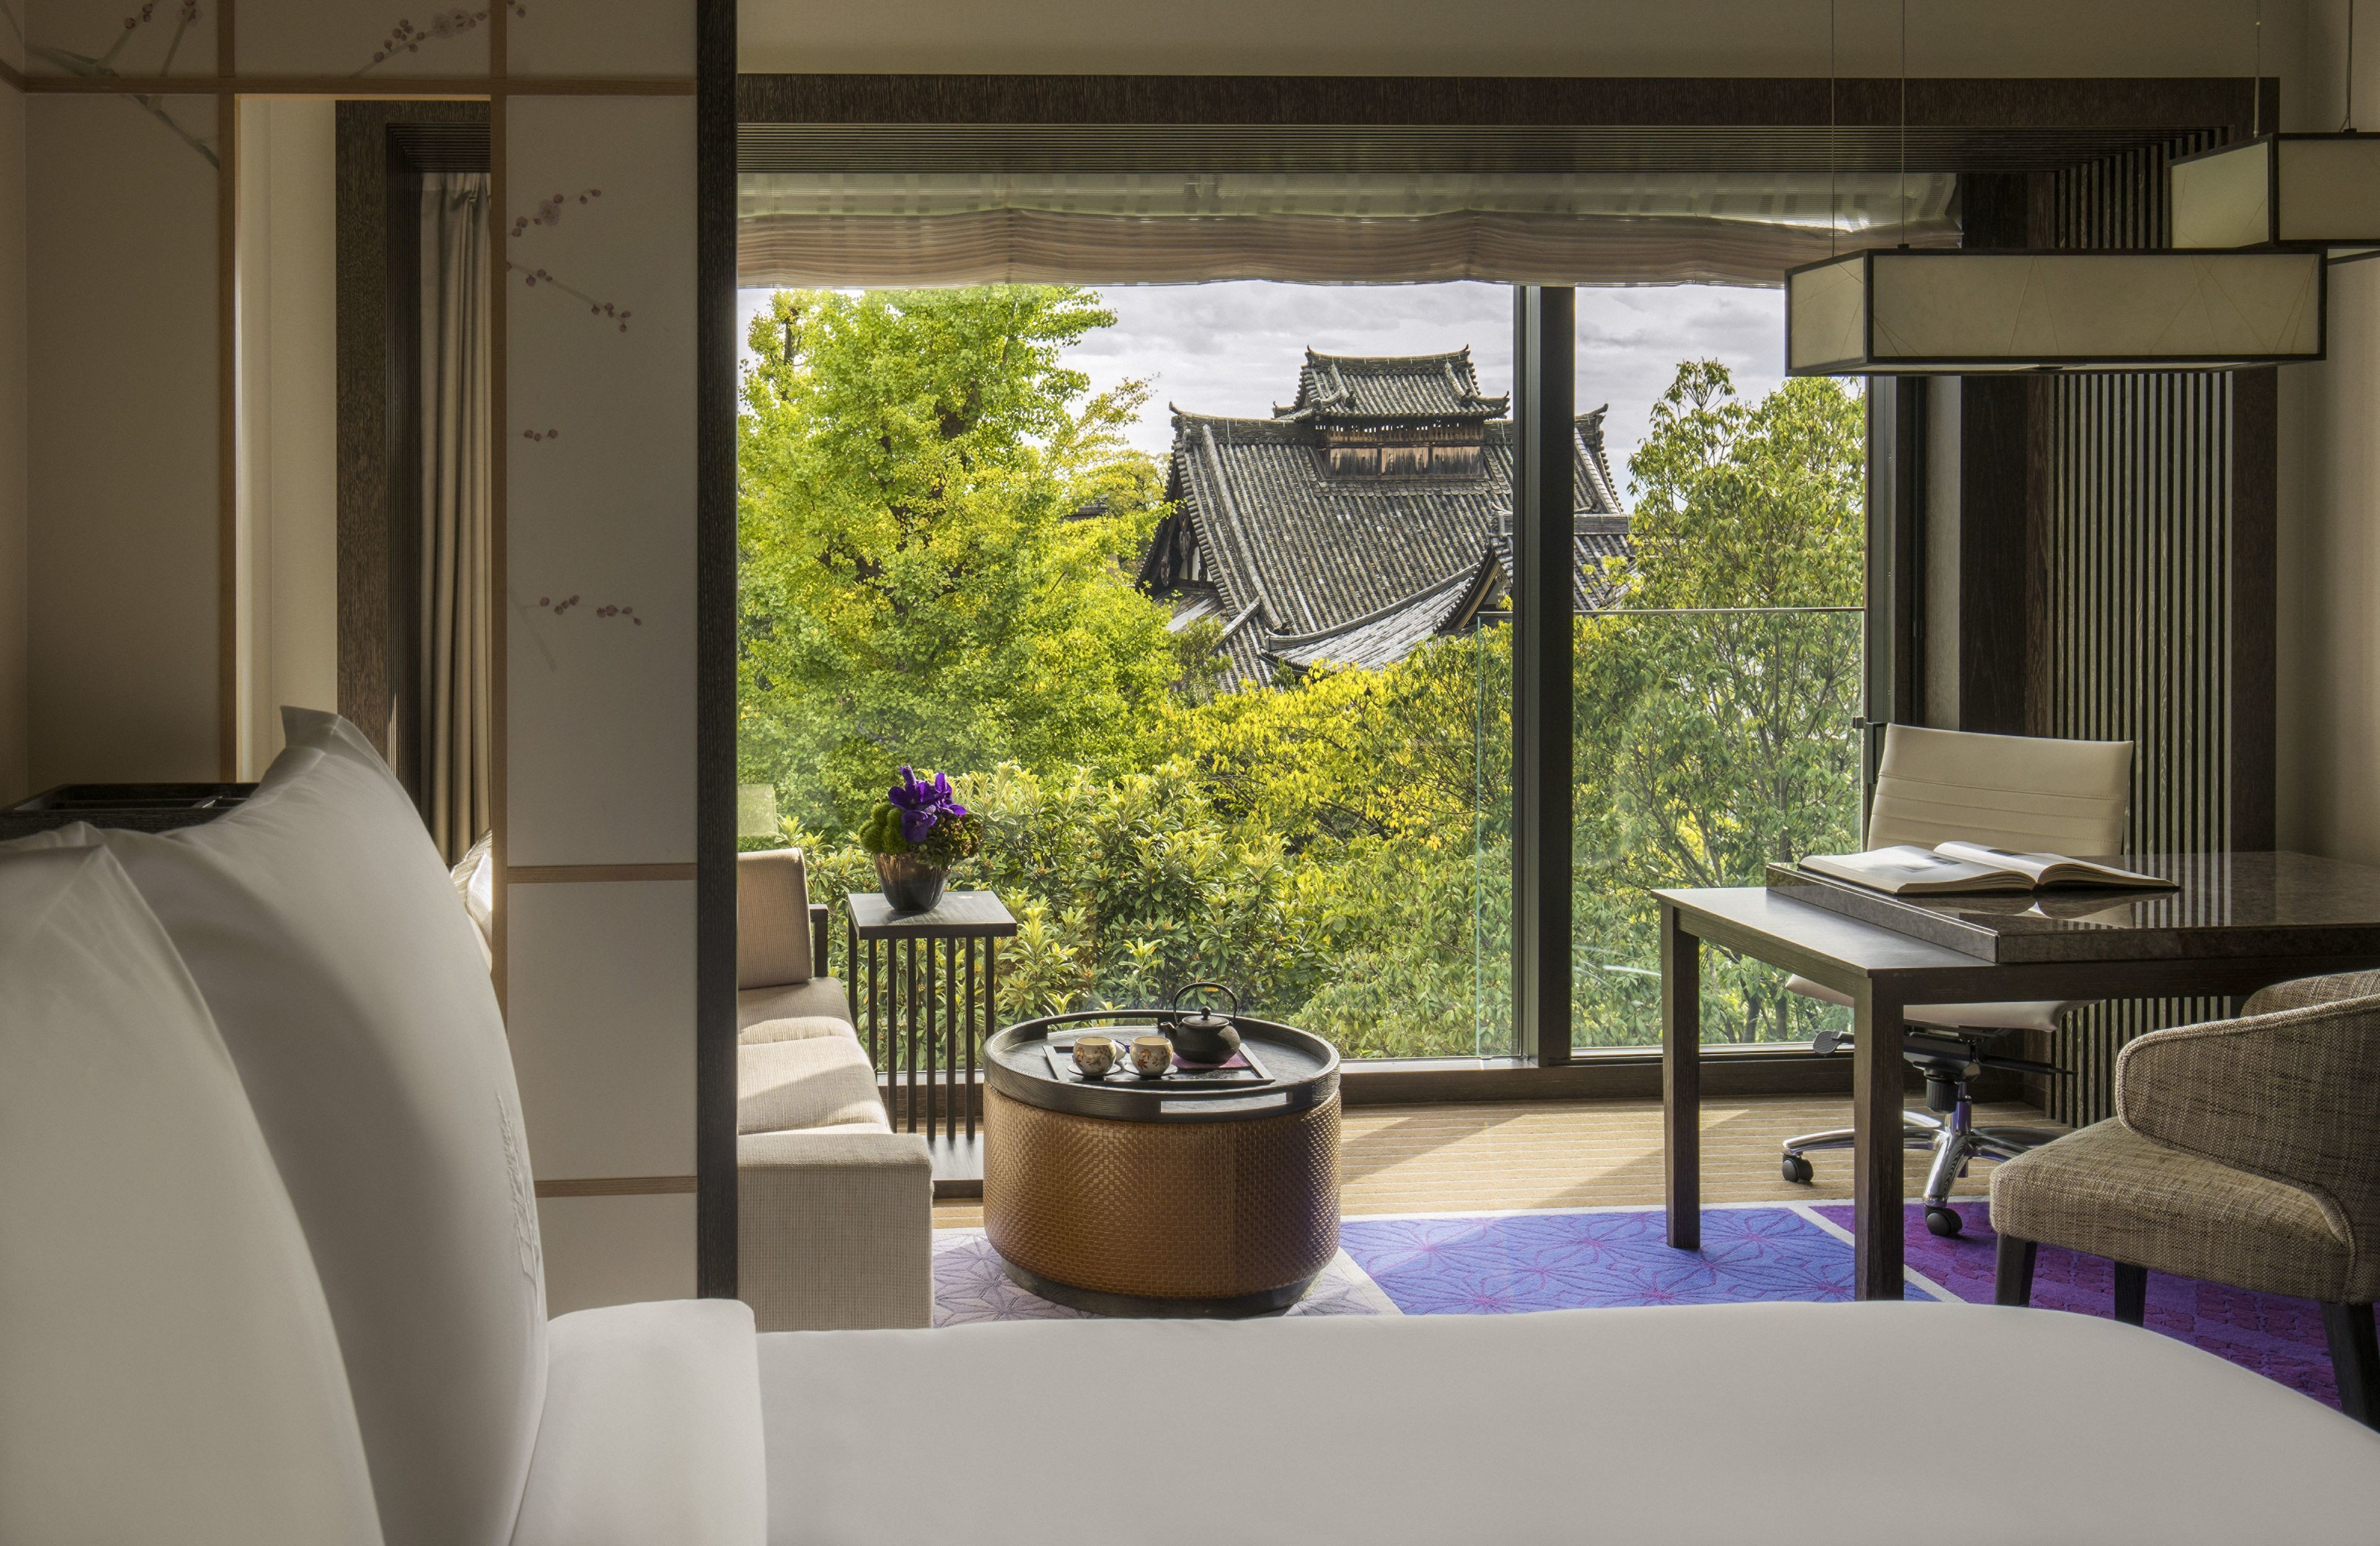 Courtesy of Four Seasons Hotel Kyoto / Expedia